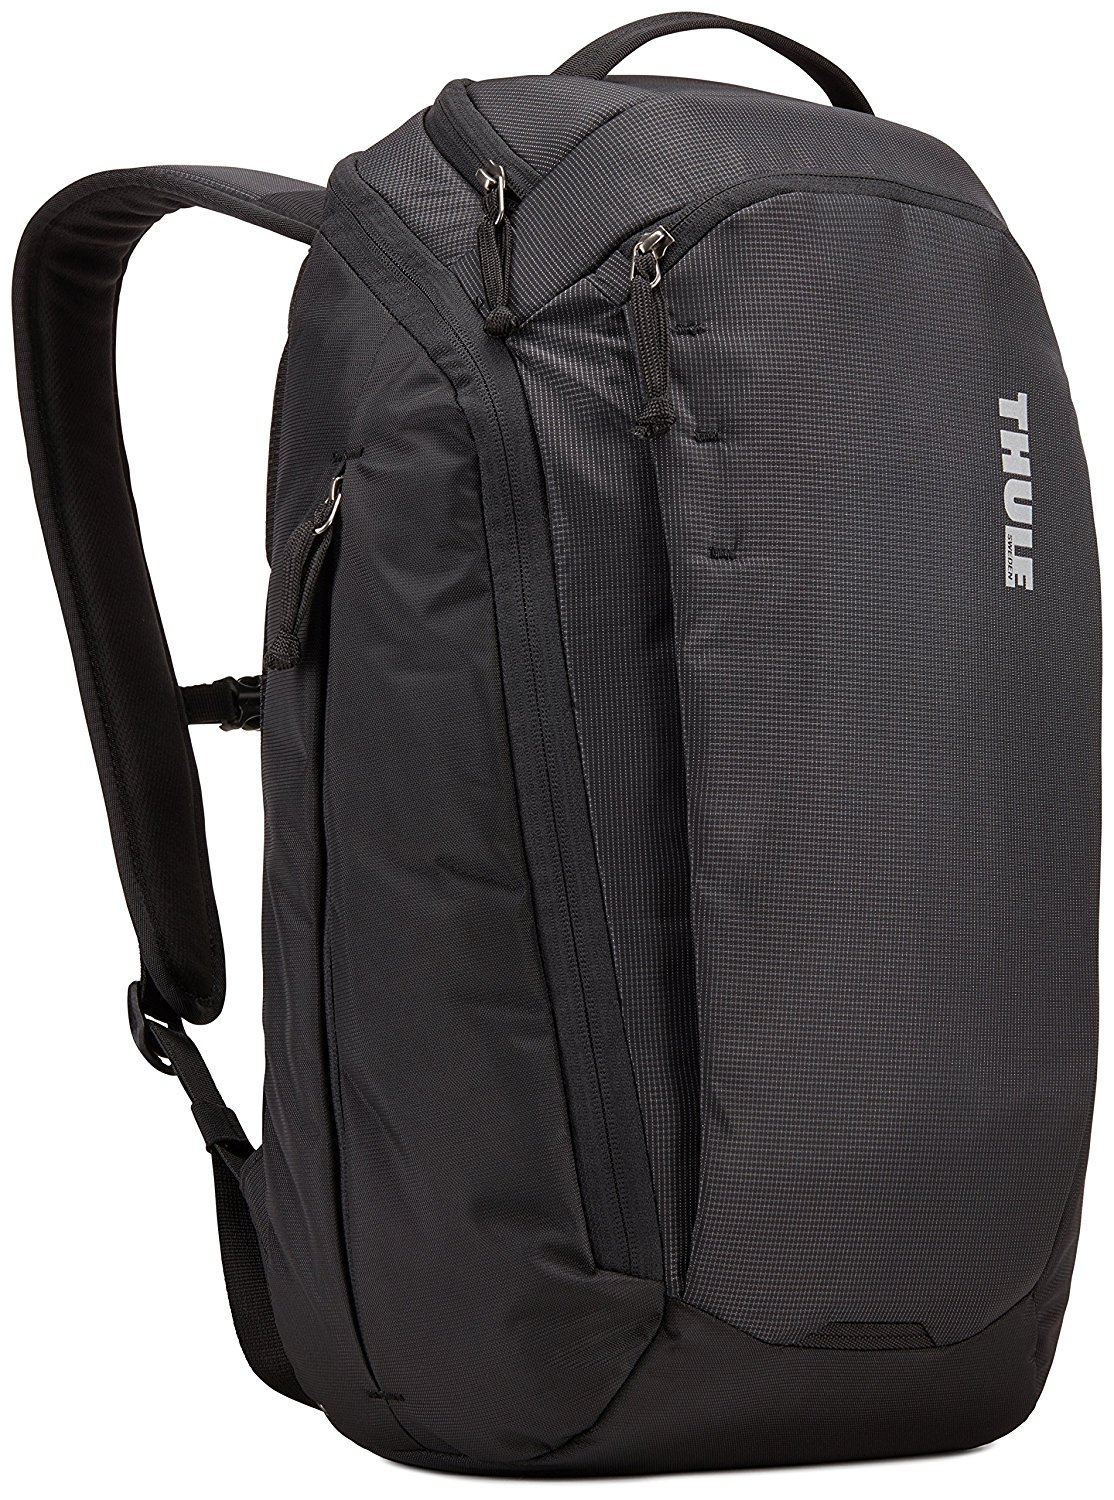 "Рюкзак Thule EnRoute Backpack 23L для ноутбука 15.6"" (Black)"